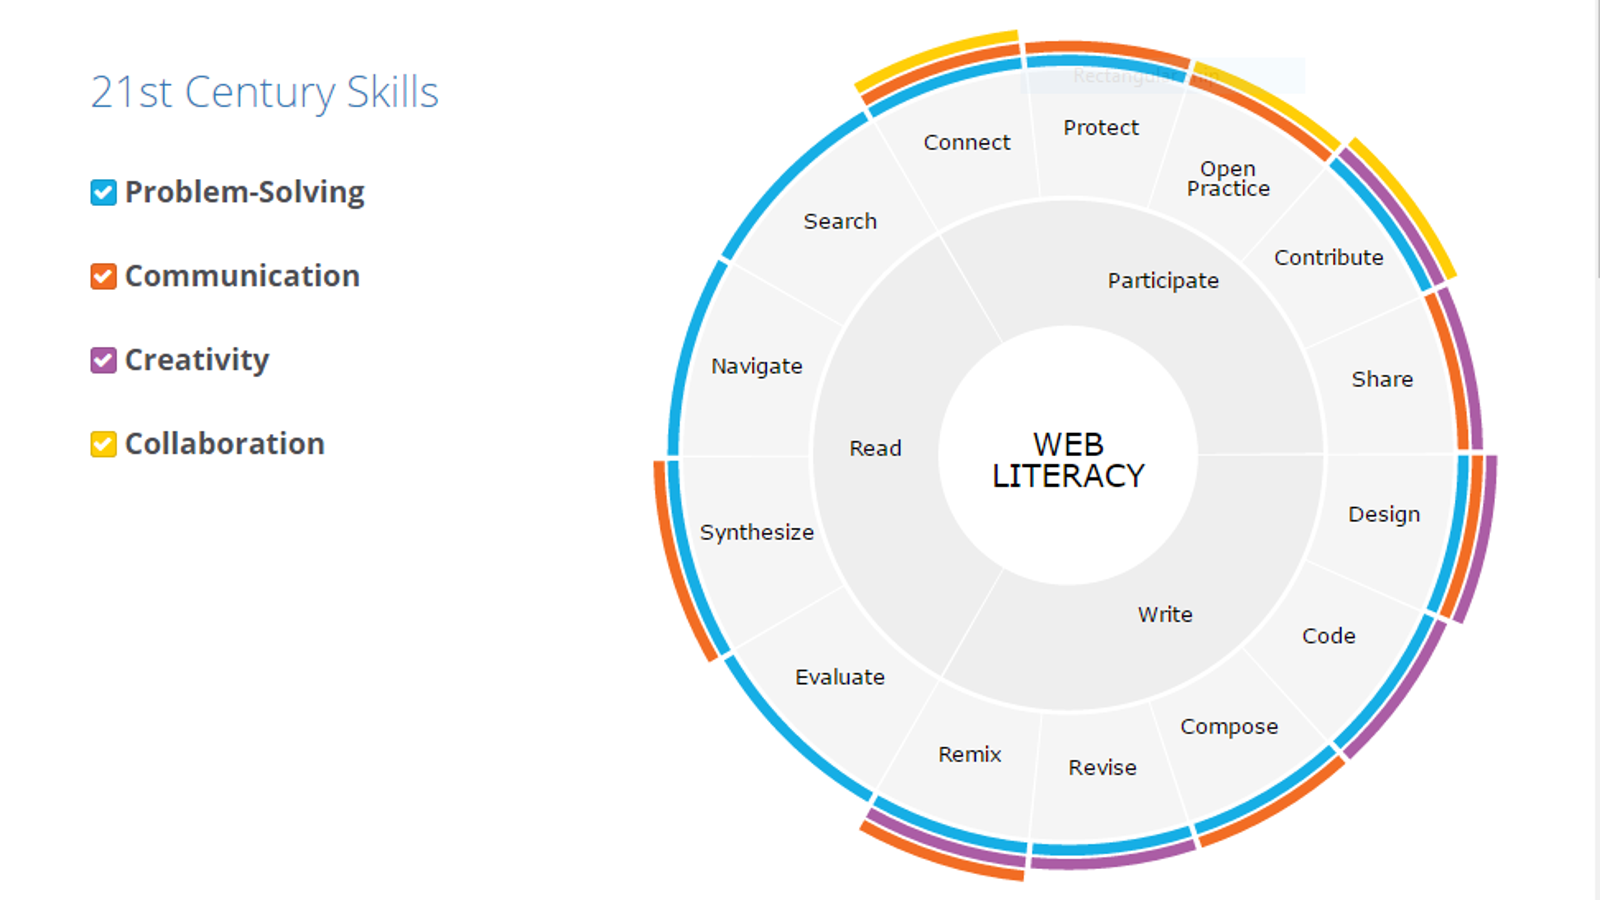 Mozilla U0026 39 S Web Literacy Map Teaches The Essential Web Skills Everyone Should Know